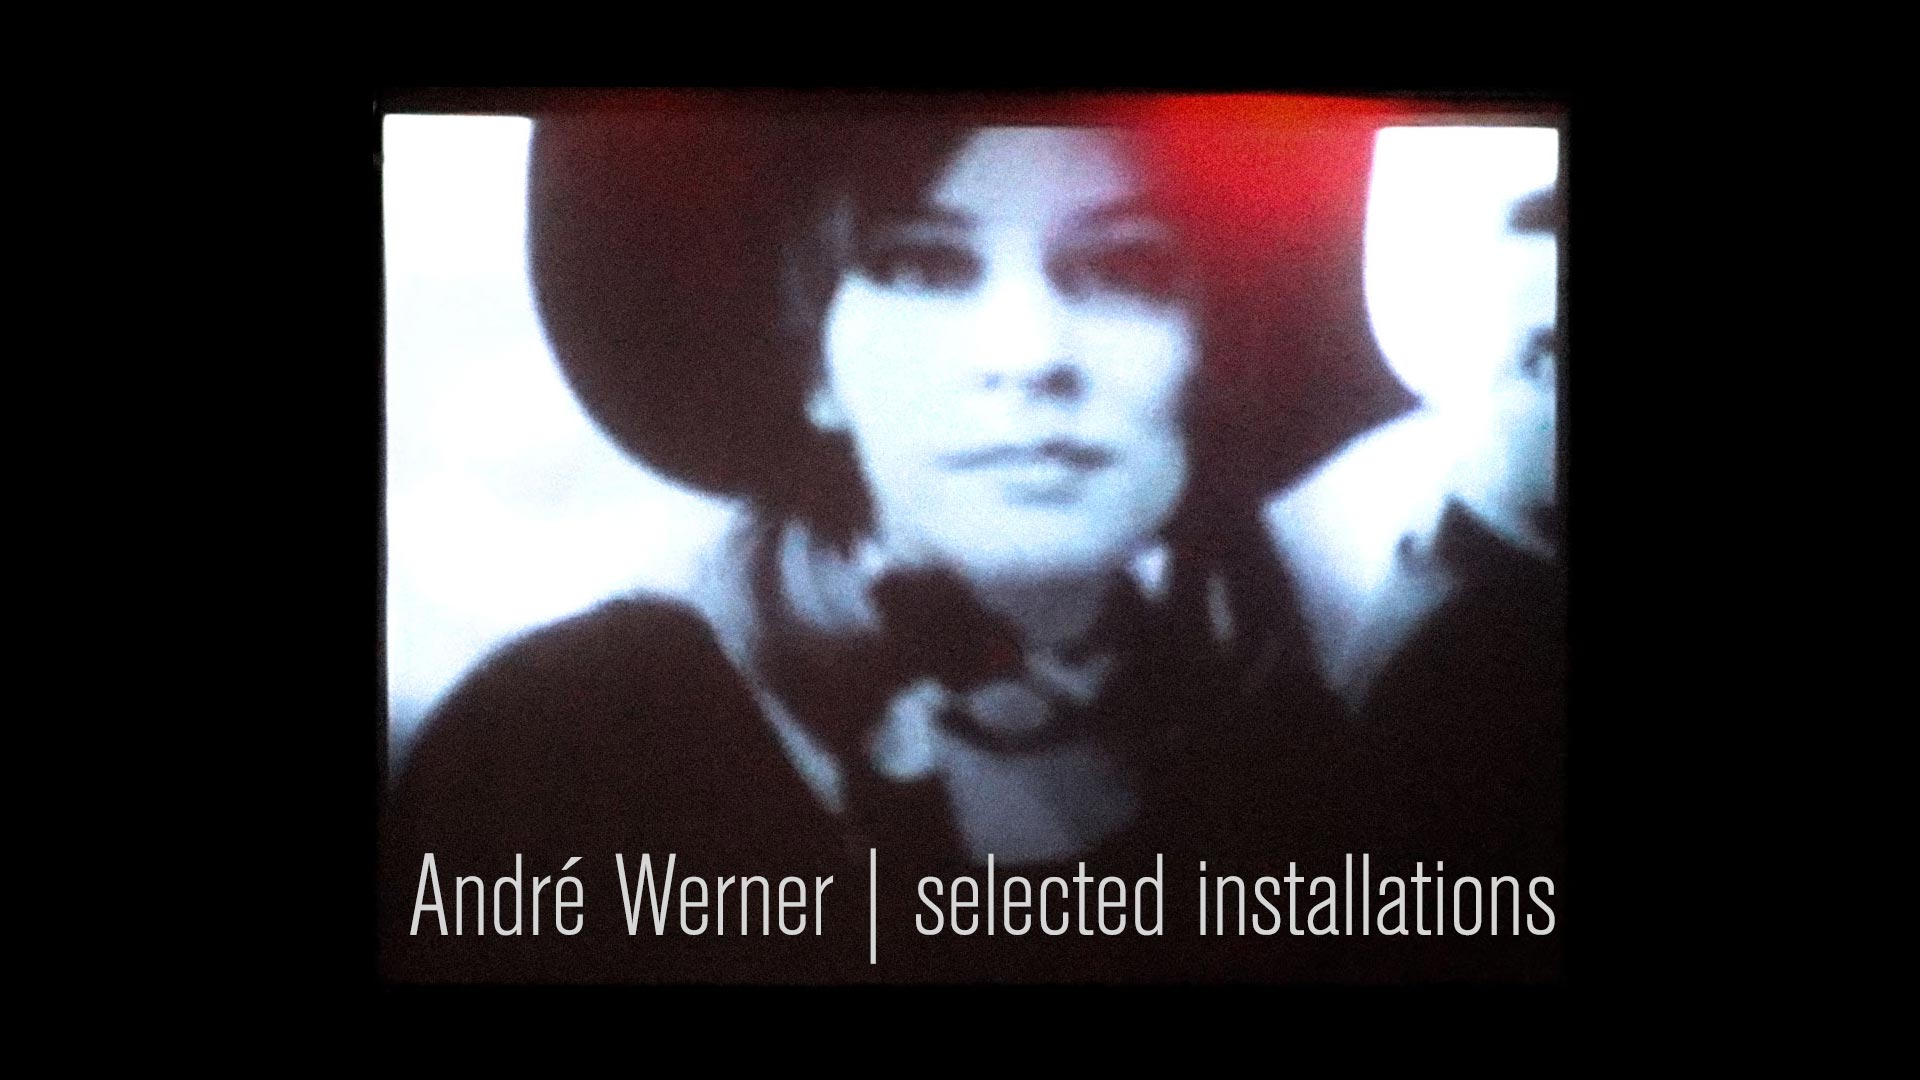 André Werner | selected installations. A short documentary featuring selected art works by André Werner.